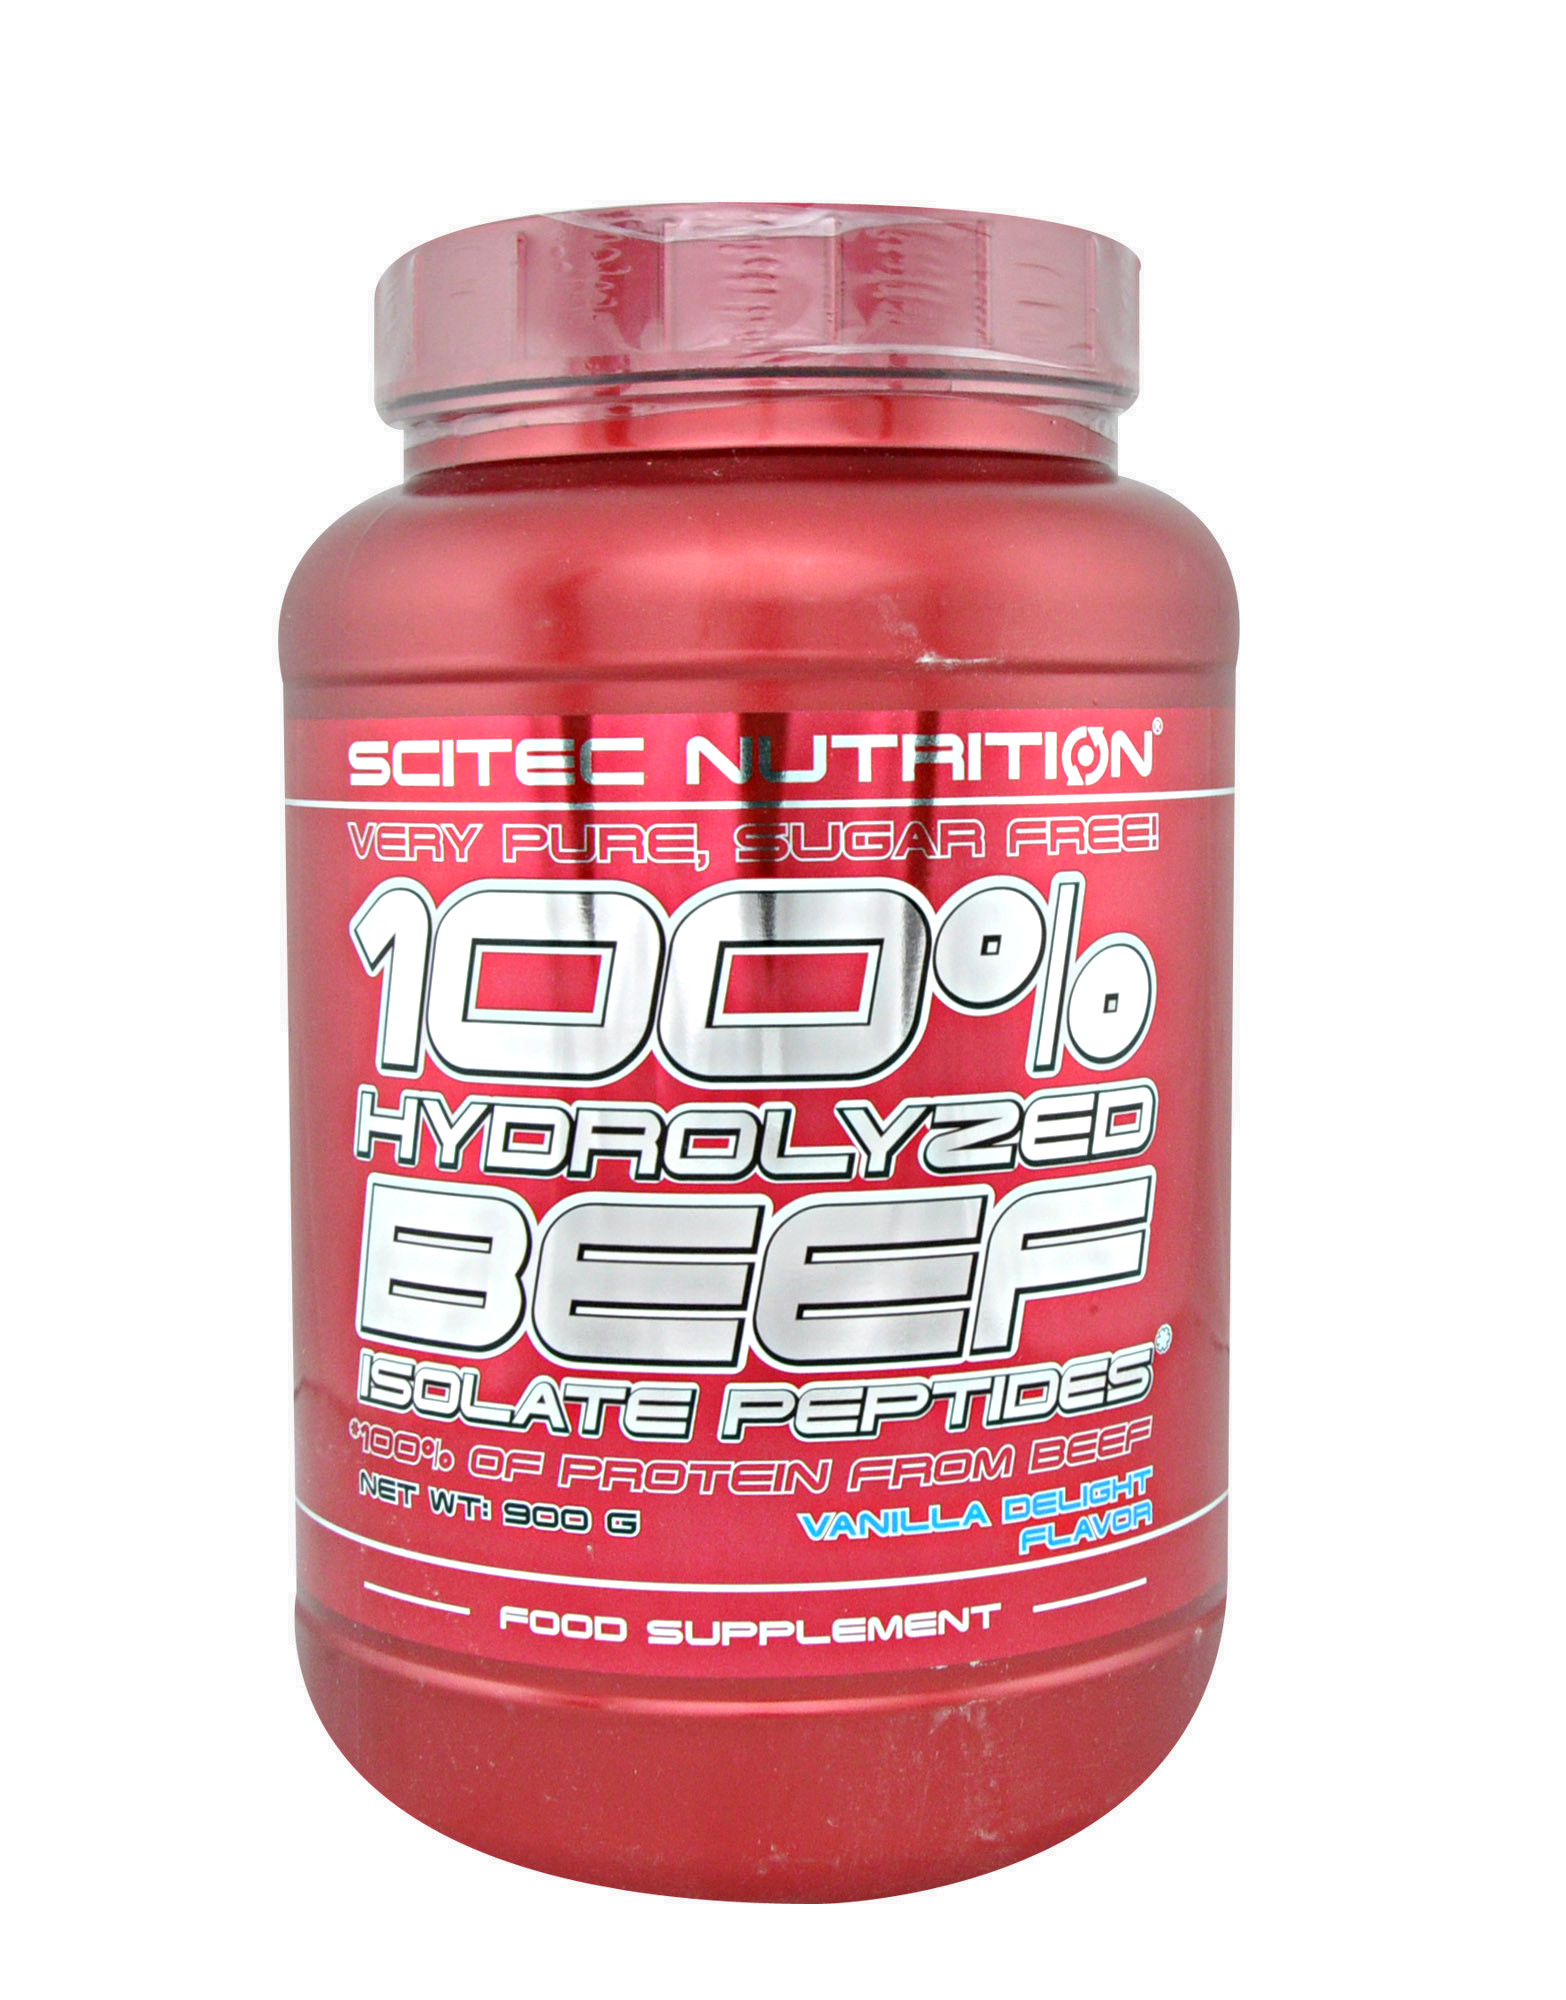 100 hydrolyzed beef isolate peptides scitec nutrition 900 grammes 27 93. Black Bedroom Furniture Sets. Home Design Ideas